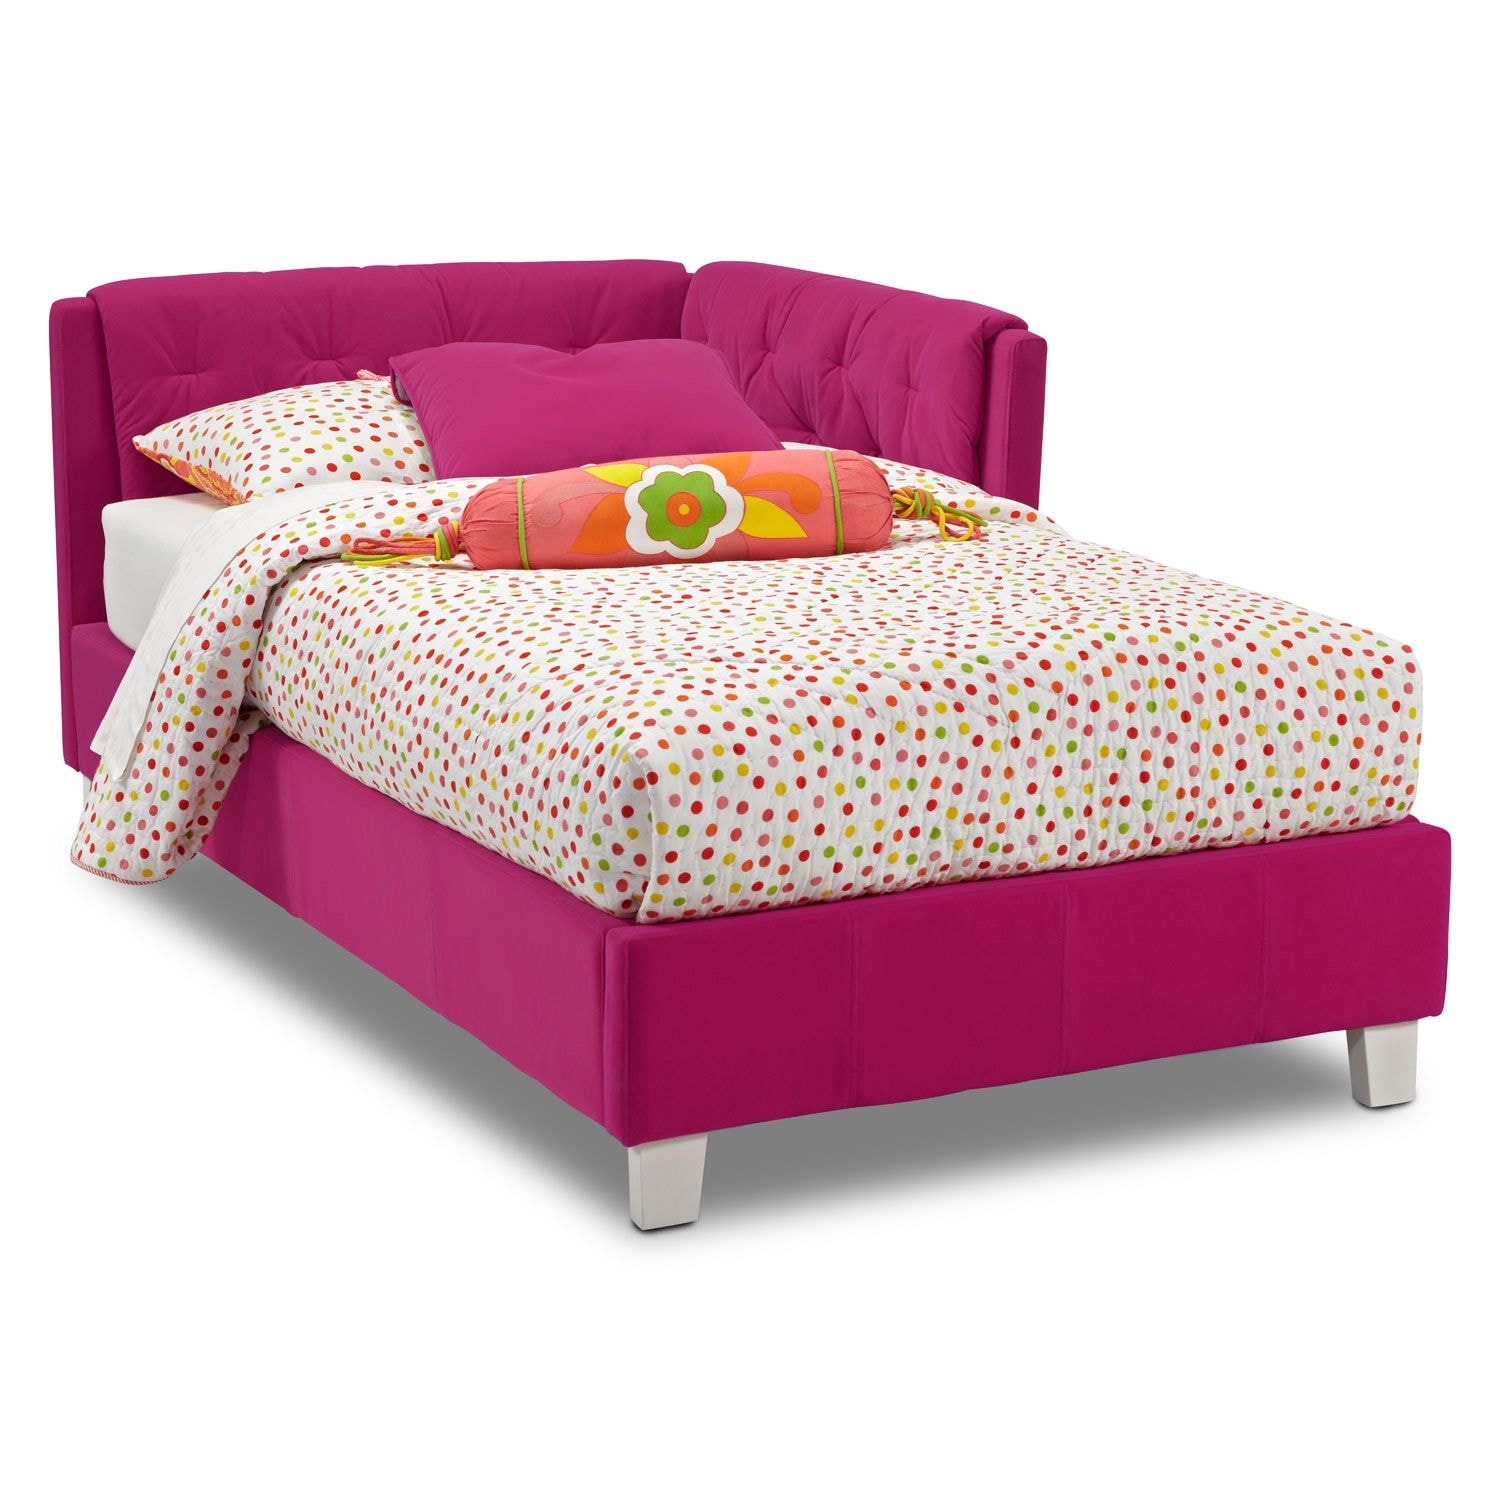 jordan twin corner bed pink - Girls Twin Bed Frame